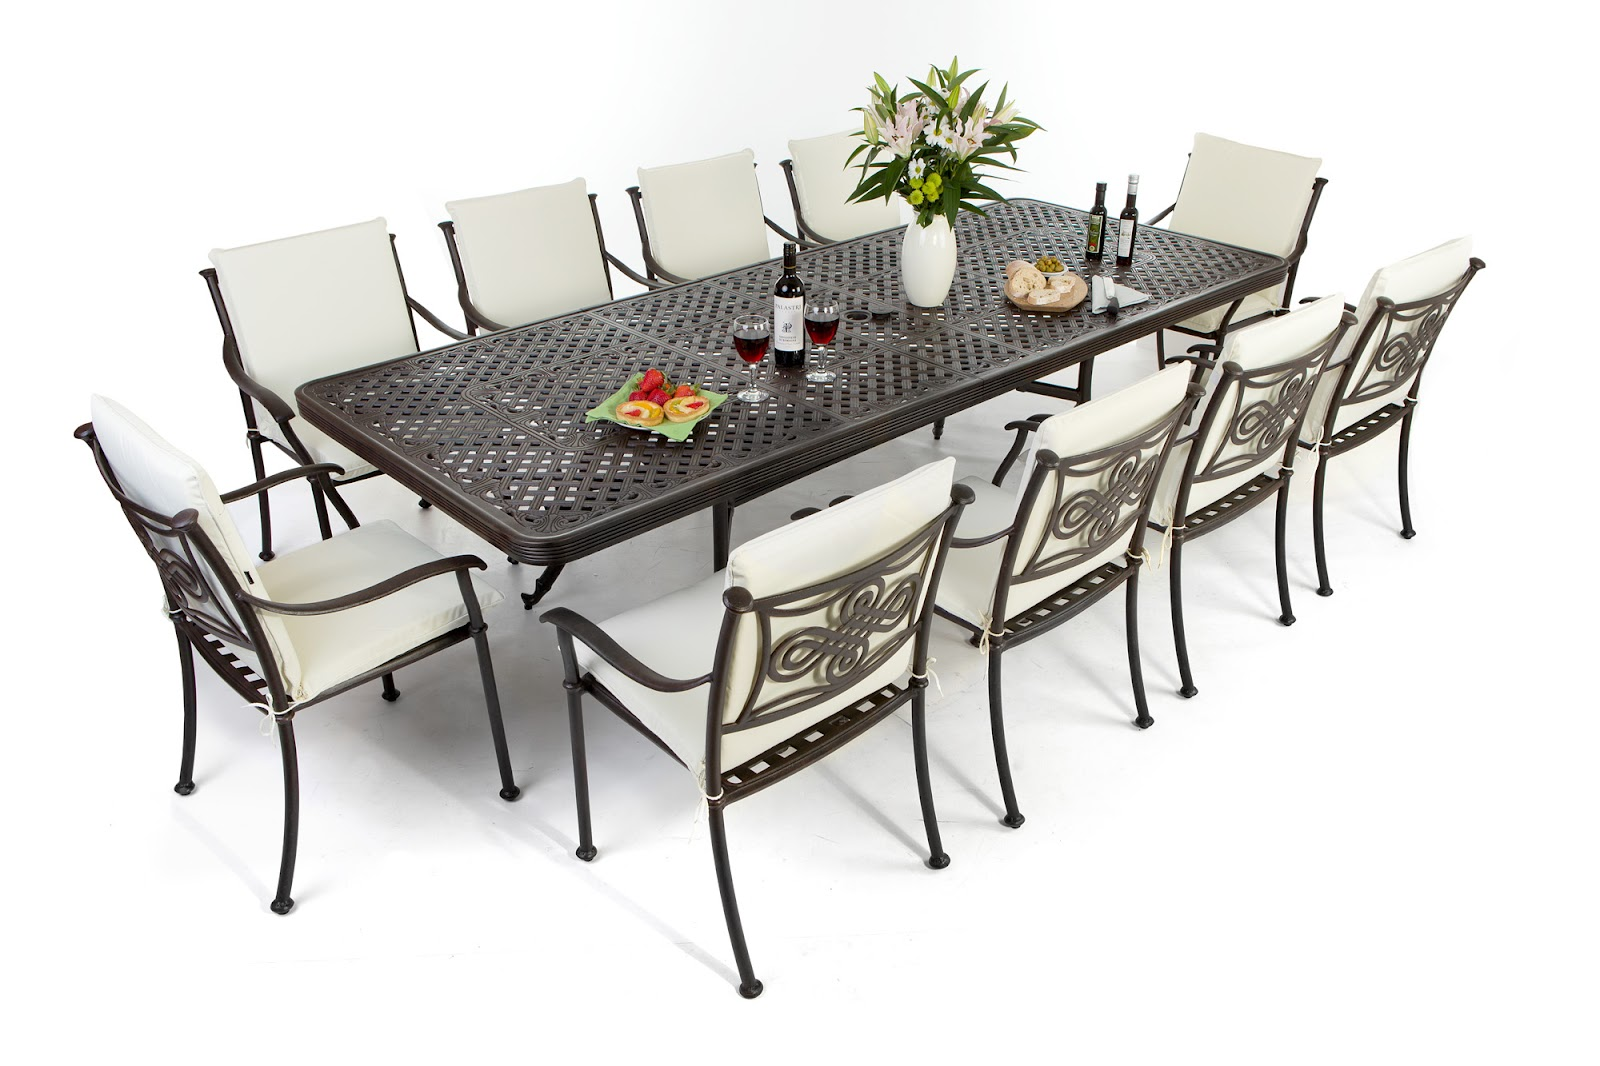 Patio Tables And Chairs Boston Rocking Chair Cushions Outside Edge Garden Furniture Blog The Versatile Rhodes